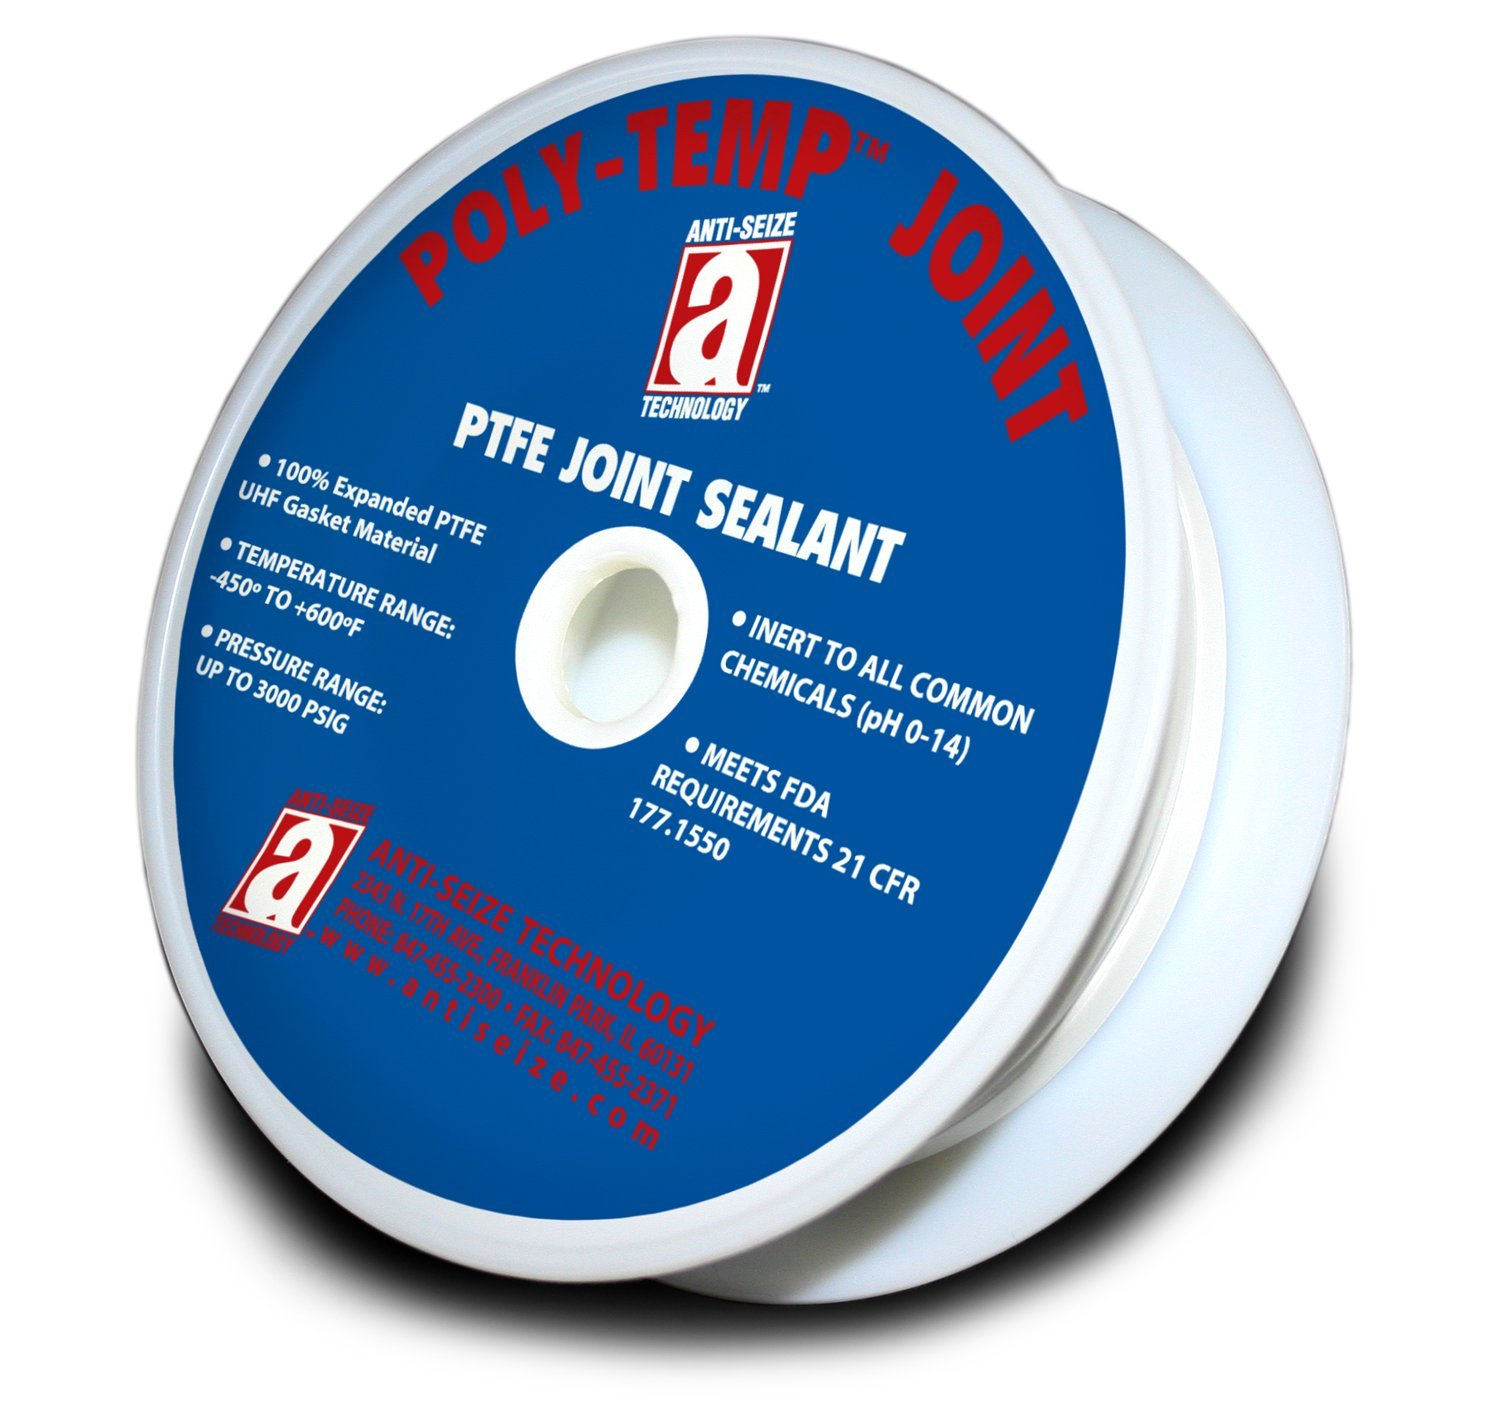 POLY-TEMP 28010 White Joint Sealant 100% PTFE Gasket Material Expanded UHF Adhesive Tape, 3/8'' x 25'